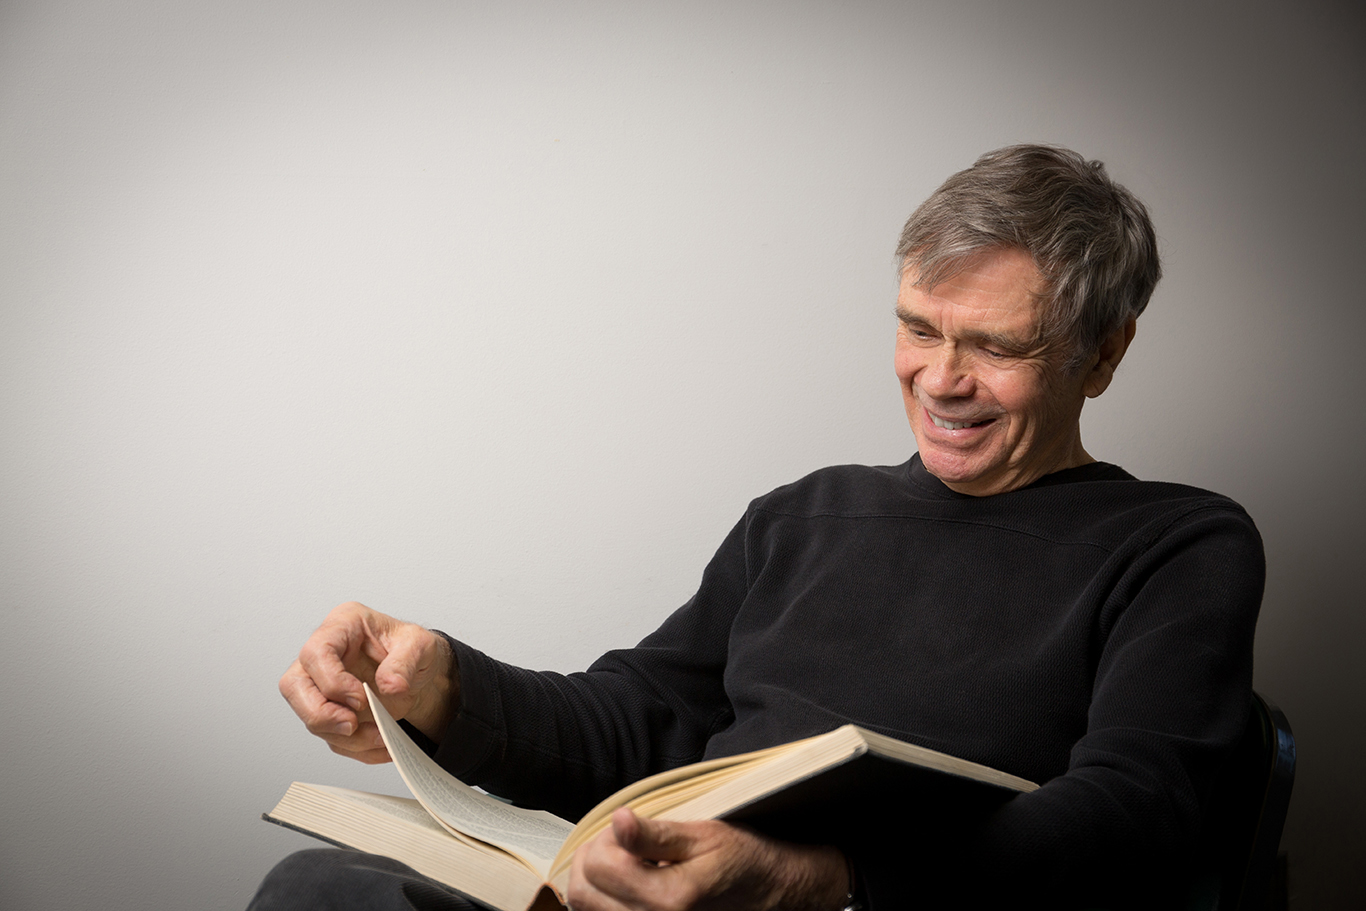 Photo of Professor Sid homan reading a book.